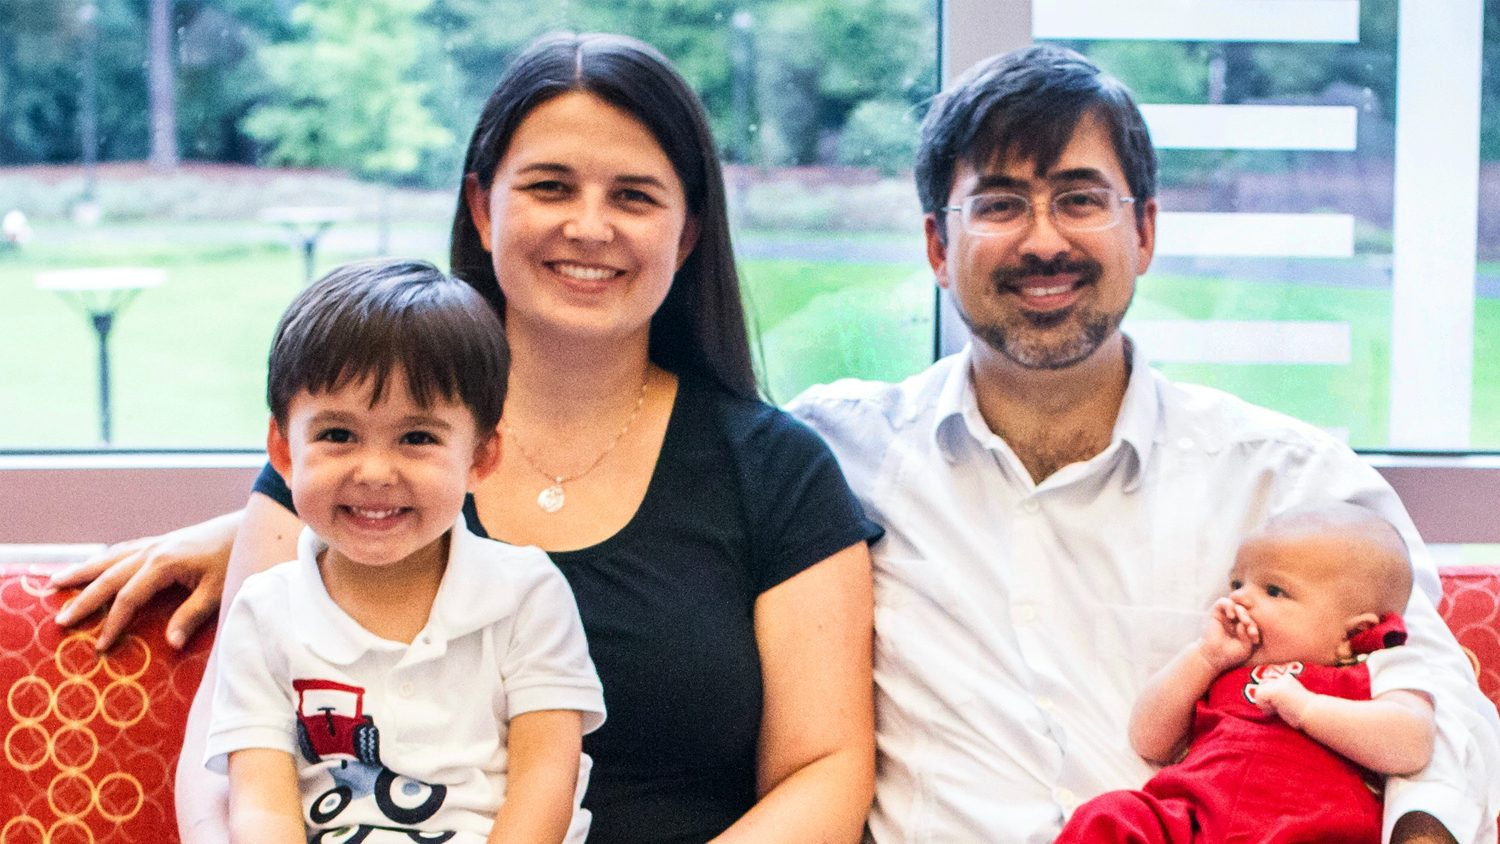 Caitlin Boon is a CALS alum, and her husband, Tomas Carbonell, is an NC State alum